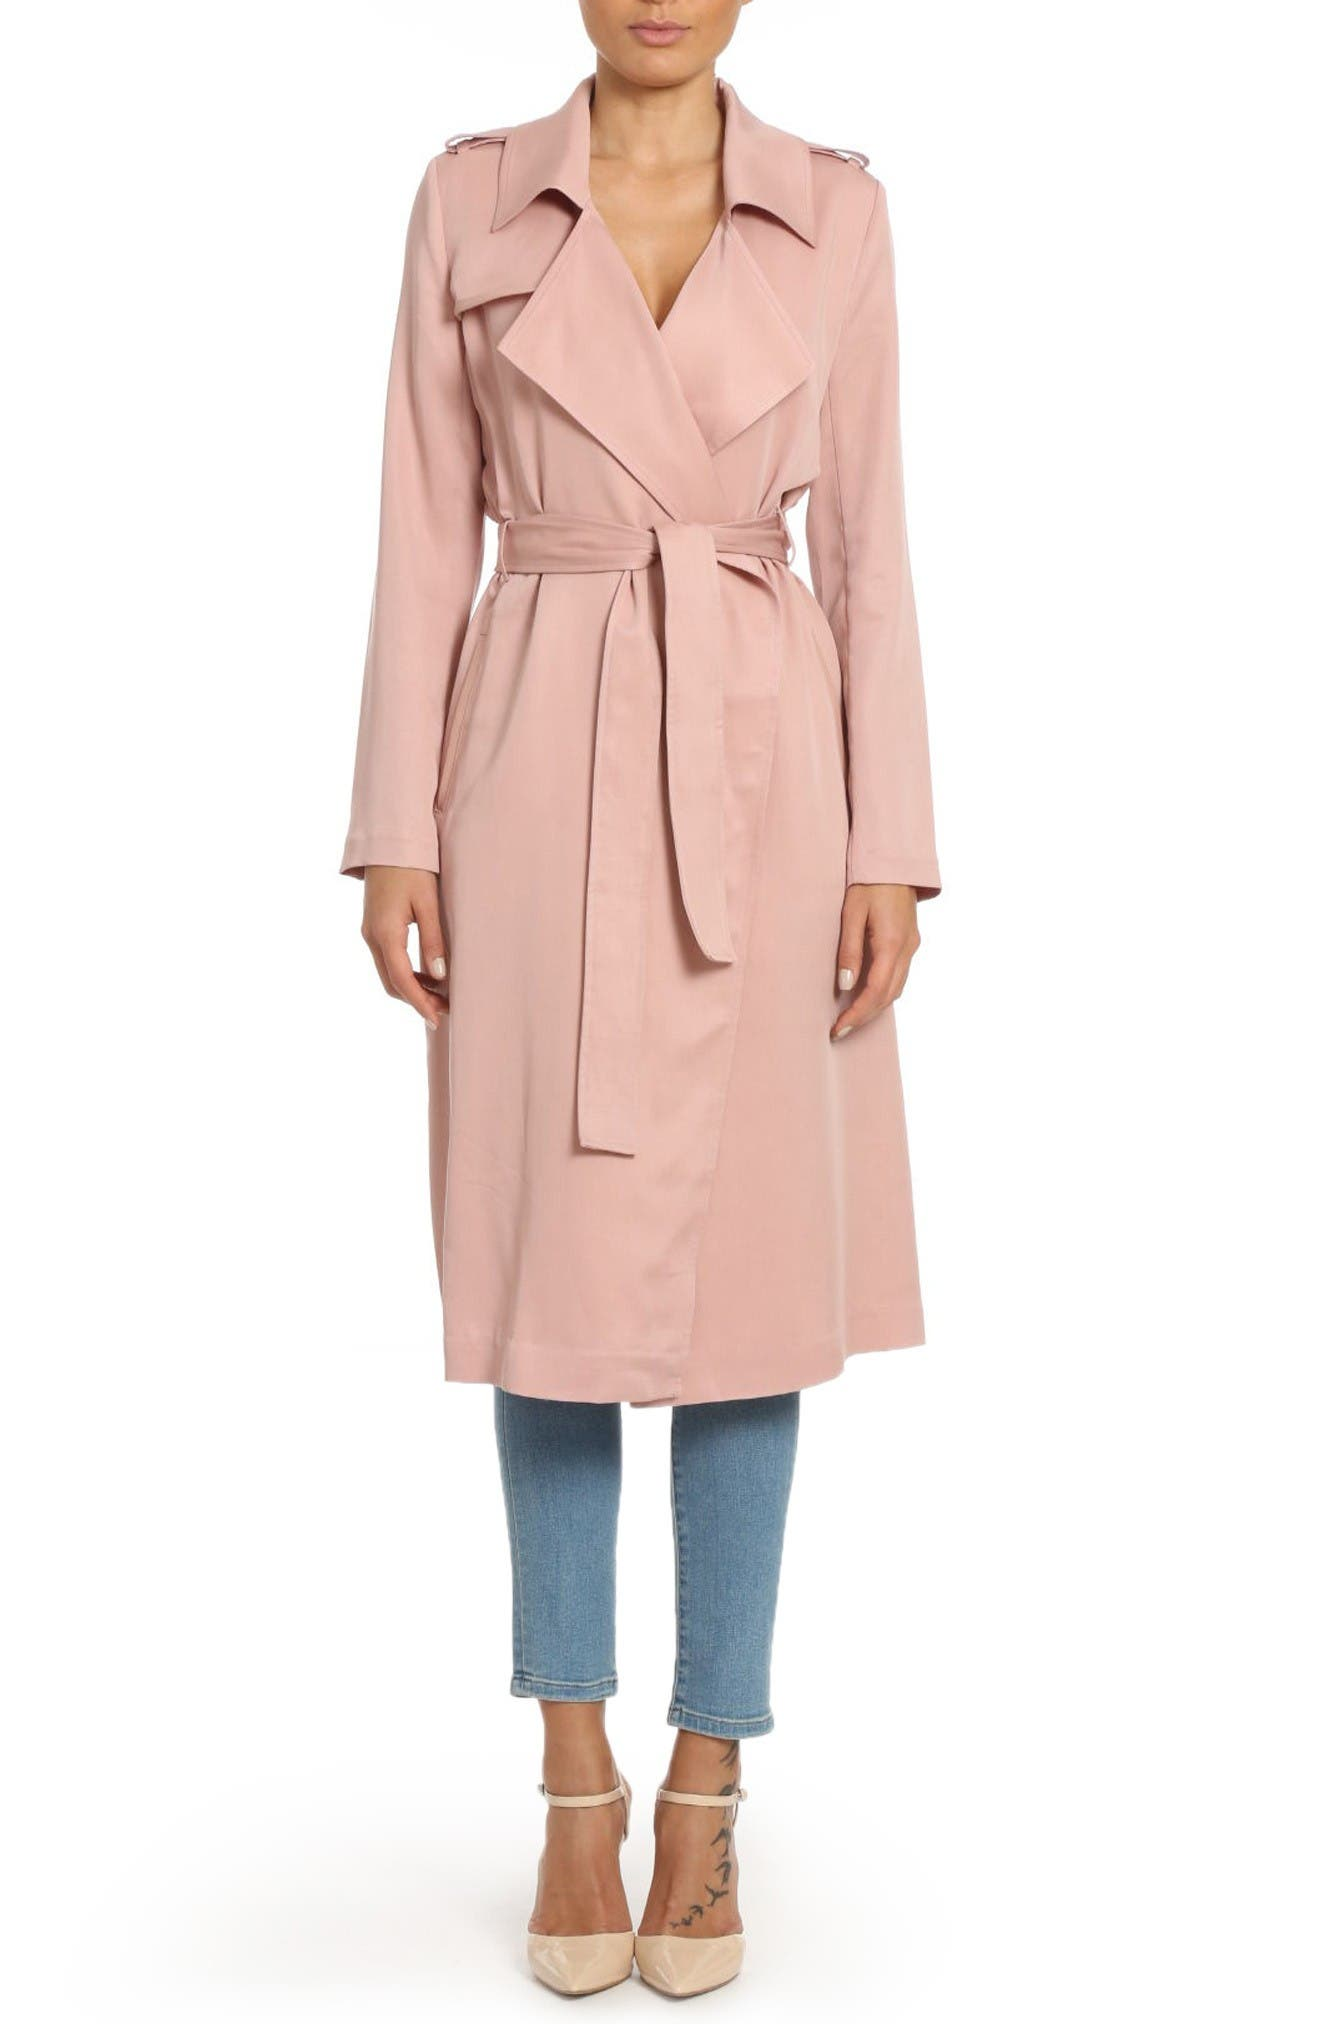 Trench Coats & Jackets for Women | Nordstrom